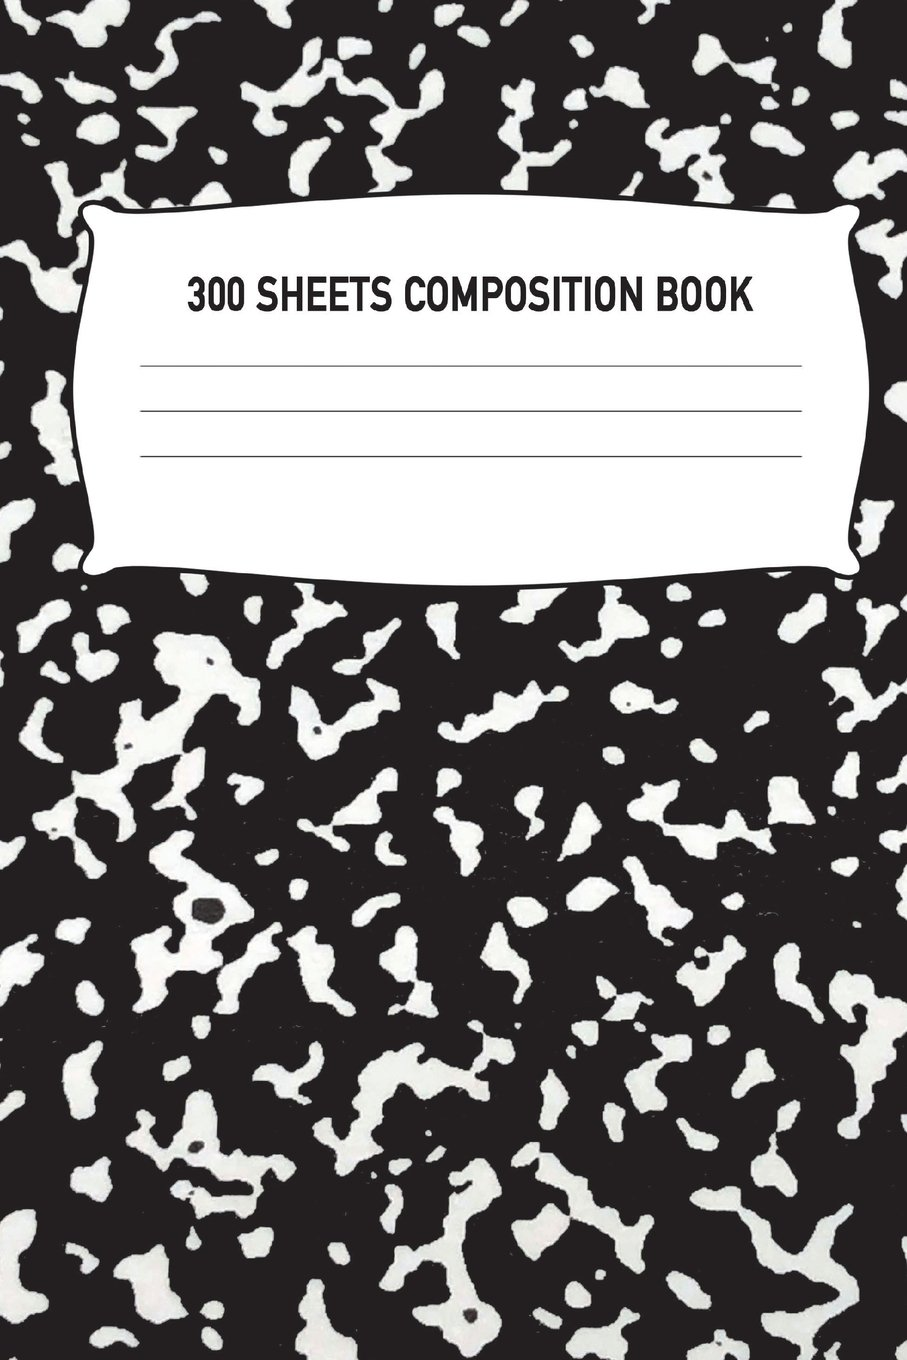 300 Sheets Composition Book: Black Wide Ruled Notebook Diary Practice Journal Organizer: Adults Kids Youth: University, High School, Kindergarten, ... x 9.69 Lined Paper 600 Pages (300 Sheets) pdf